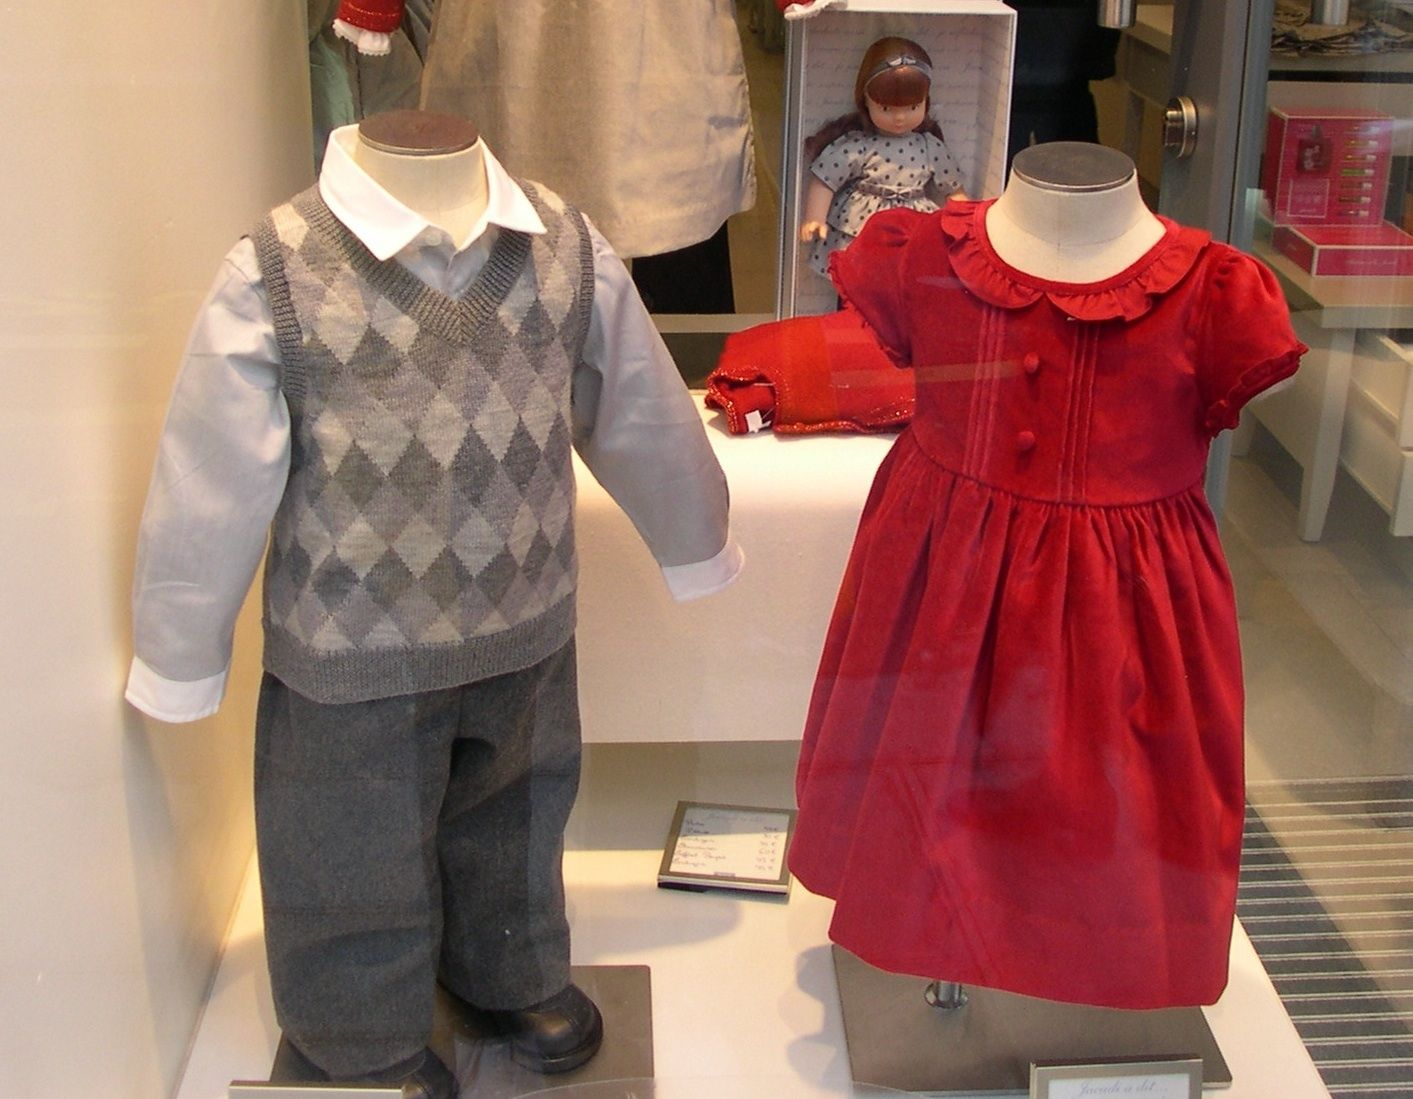 684118a1c781 The Best Children's Clothing Stores in Paris | Lil'Girl's Things ...